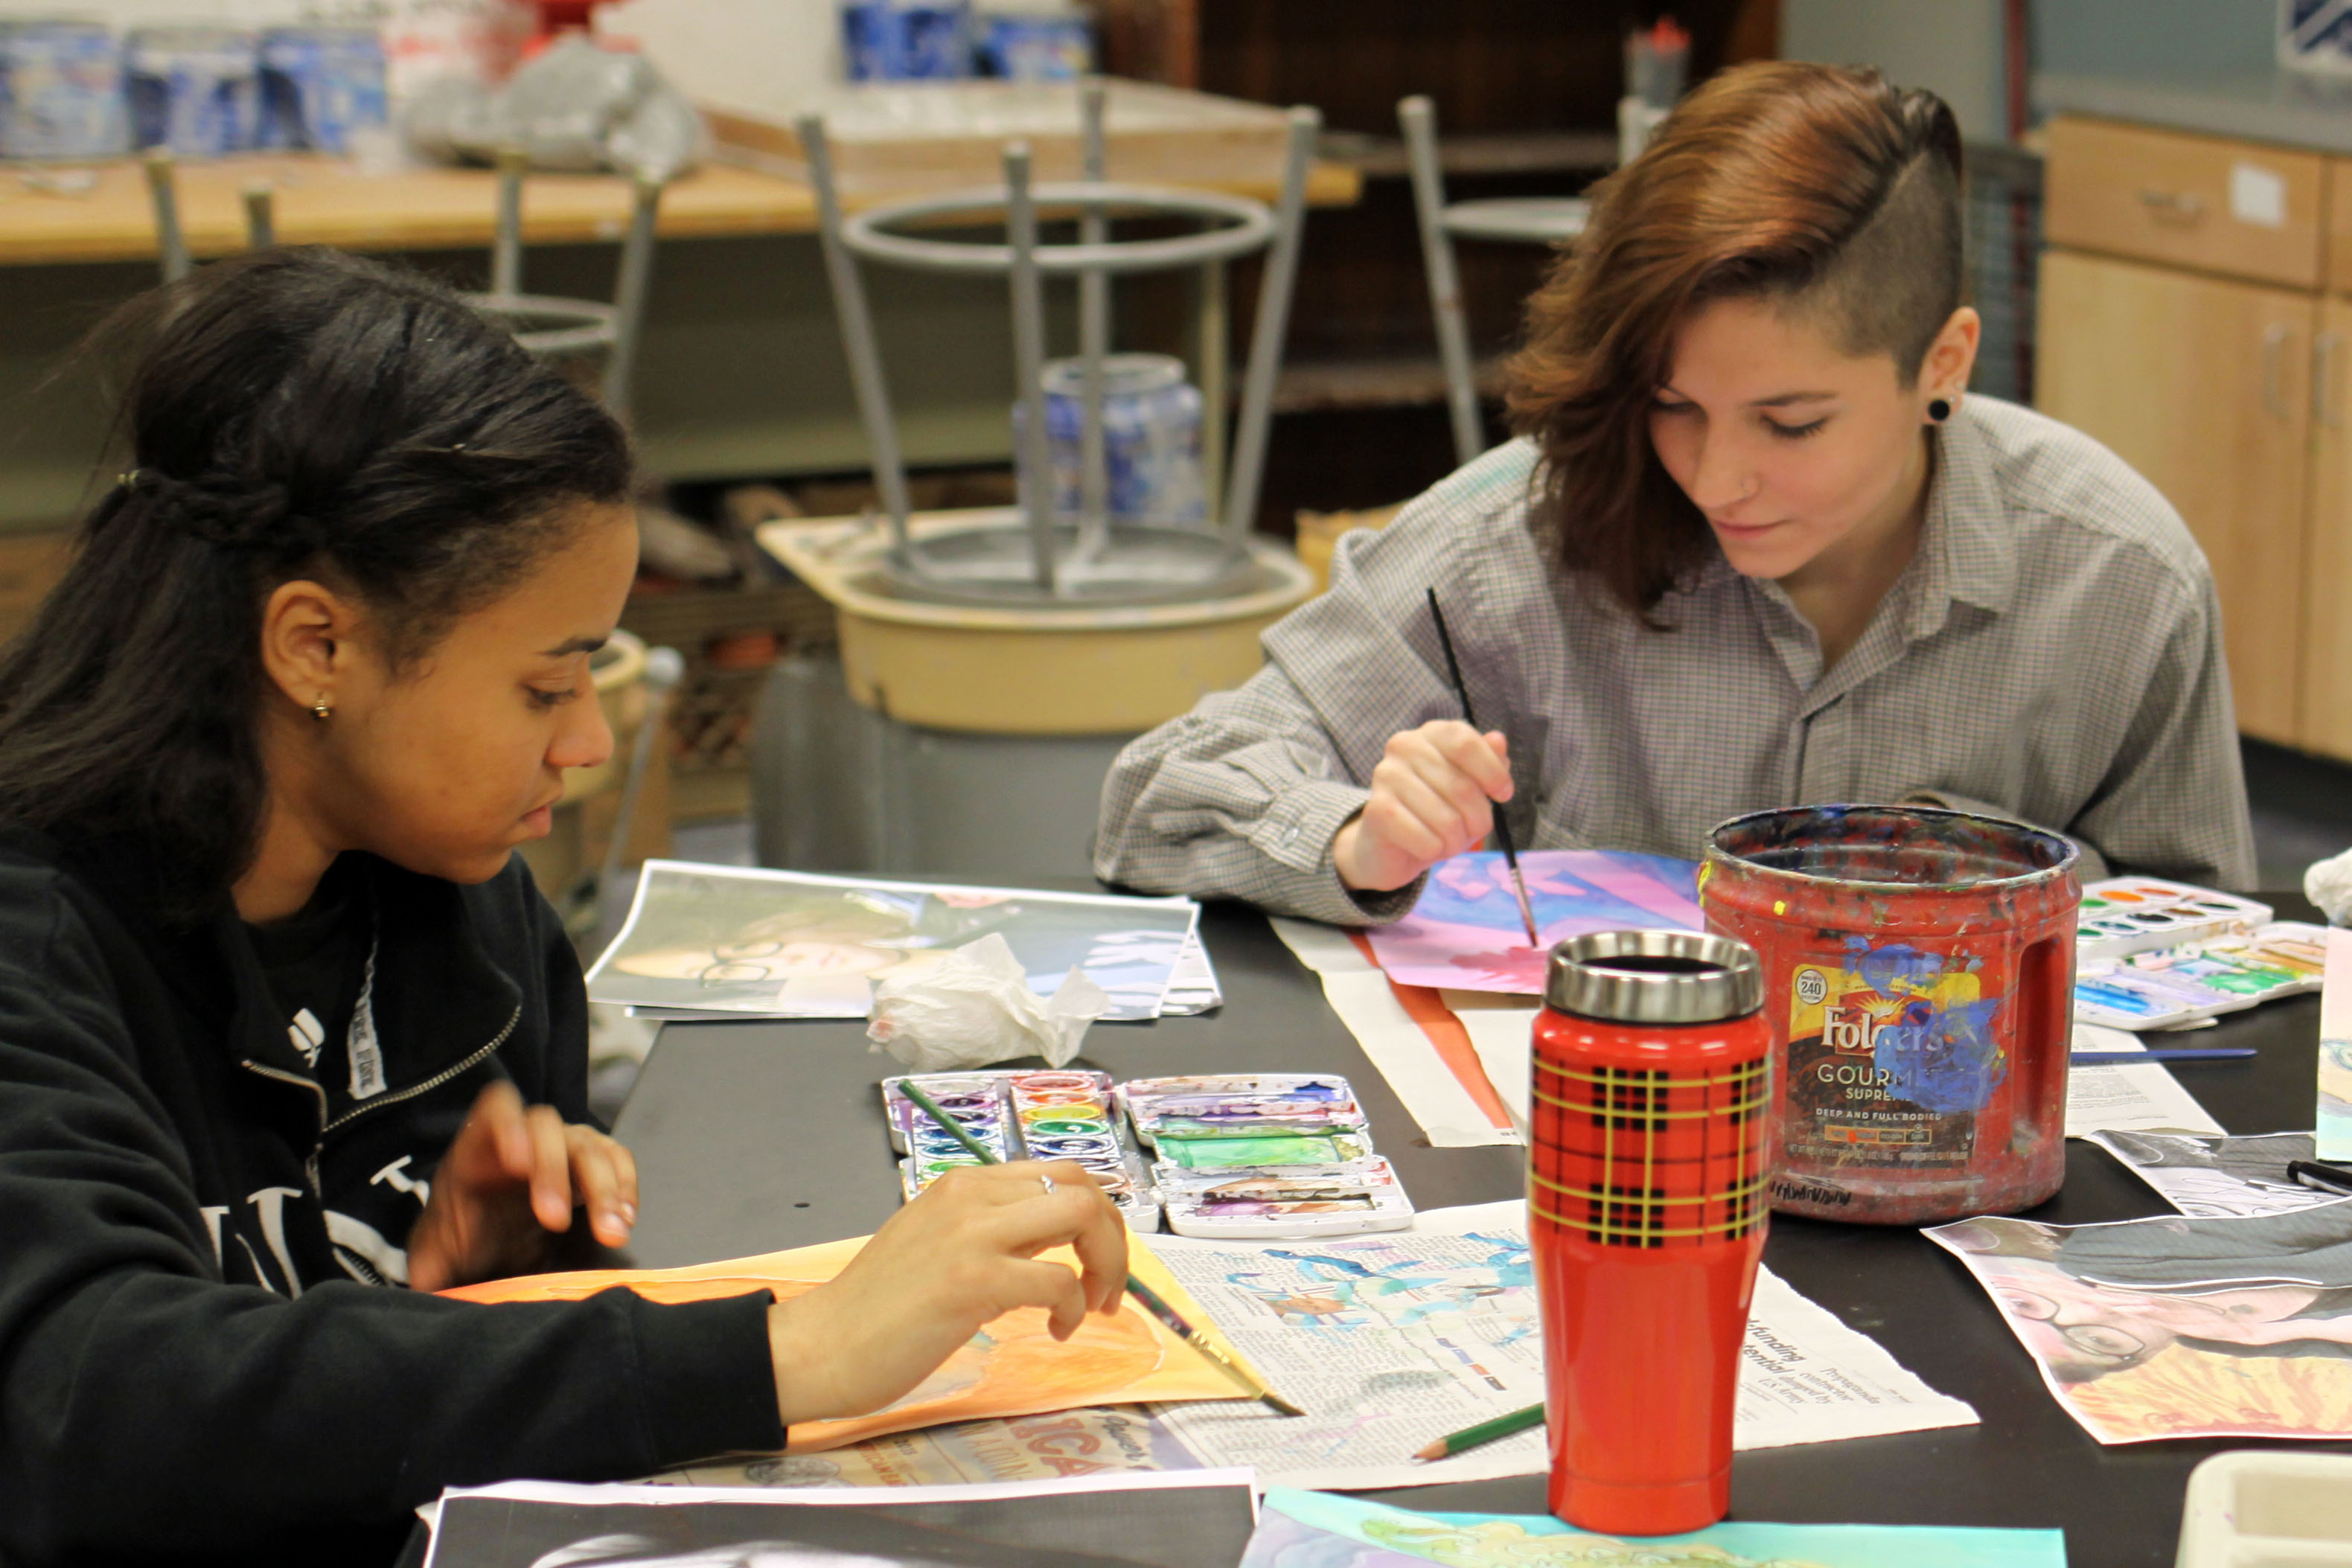 Two students working on a paint project in the Art Studio